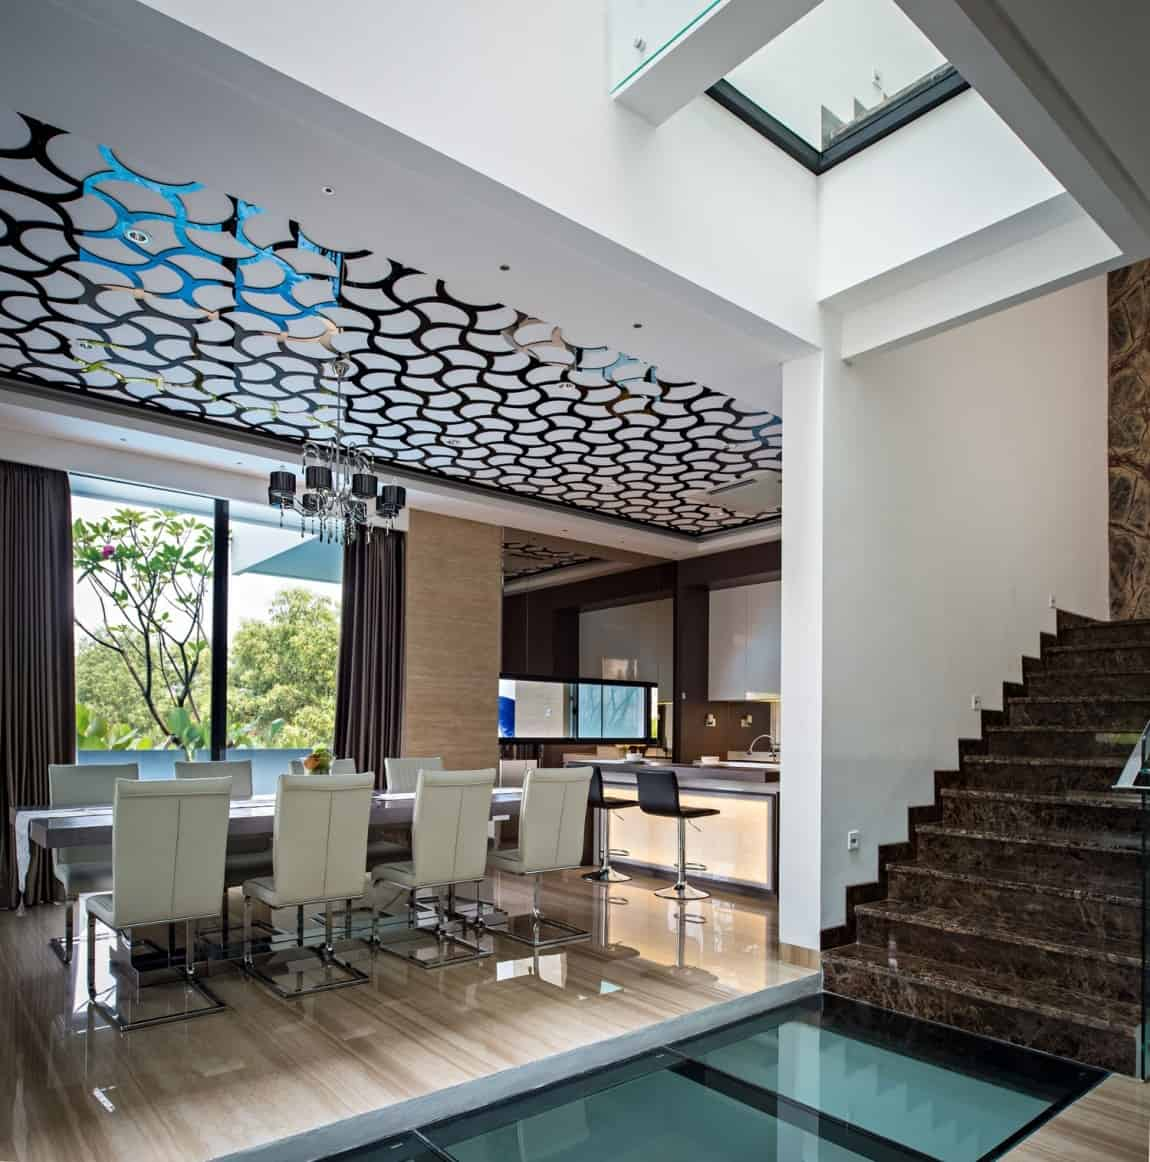 Amazing Ceiling Decorations For Your Modern Home: House With Creative Ceilings And Glass Floors